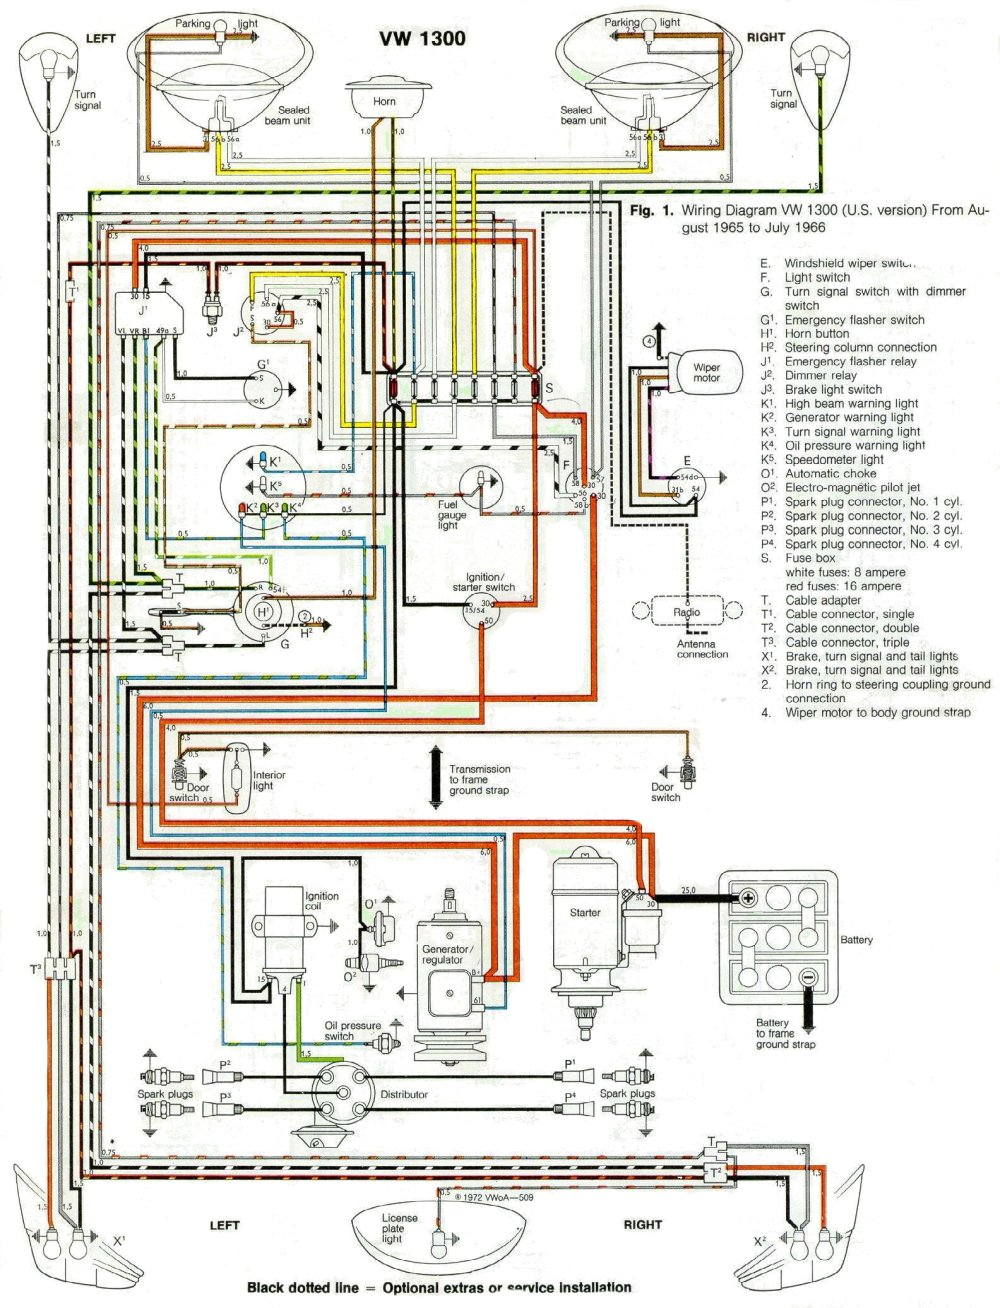 medium resolution of 1966 wiring diagram wiring diagram 1966 vw beetle wiring diagram vw bettle